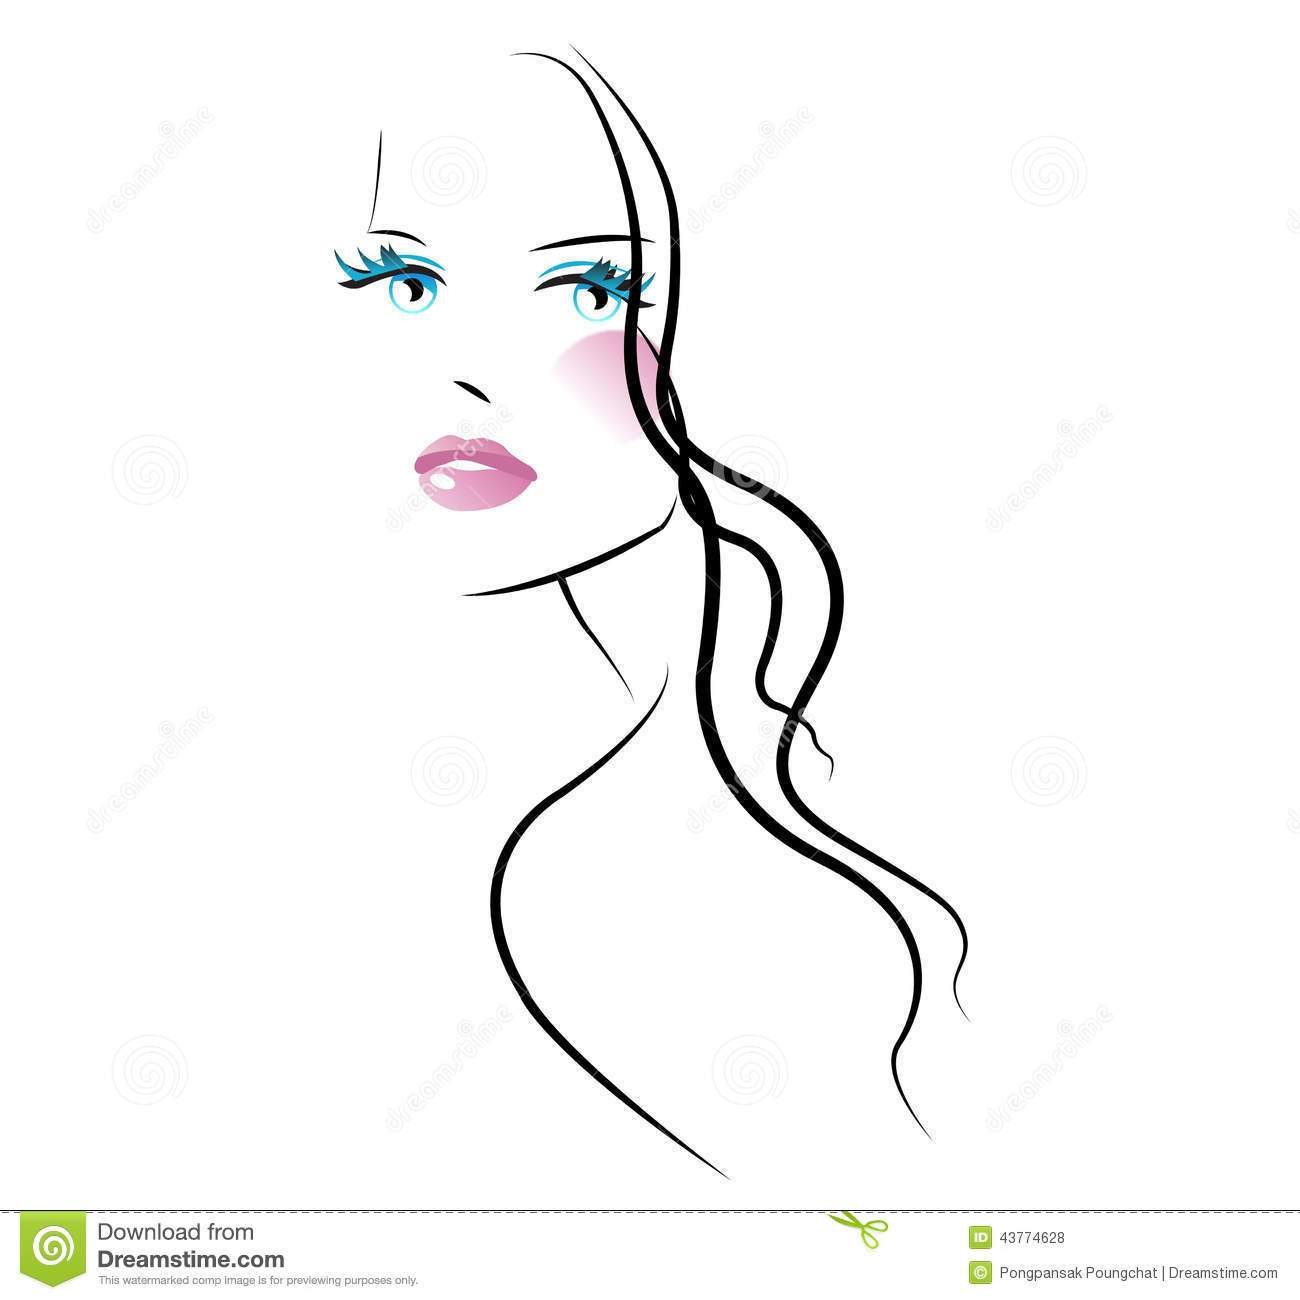 Free beauty clipart 7 » Clipart Portal.